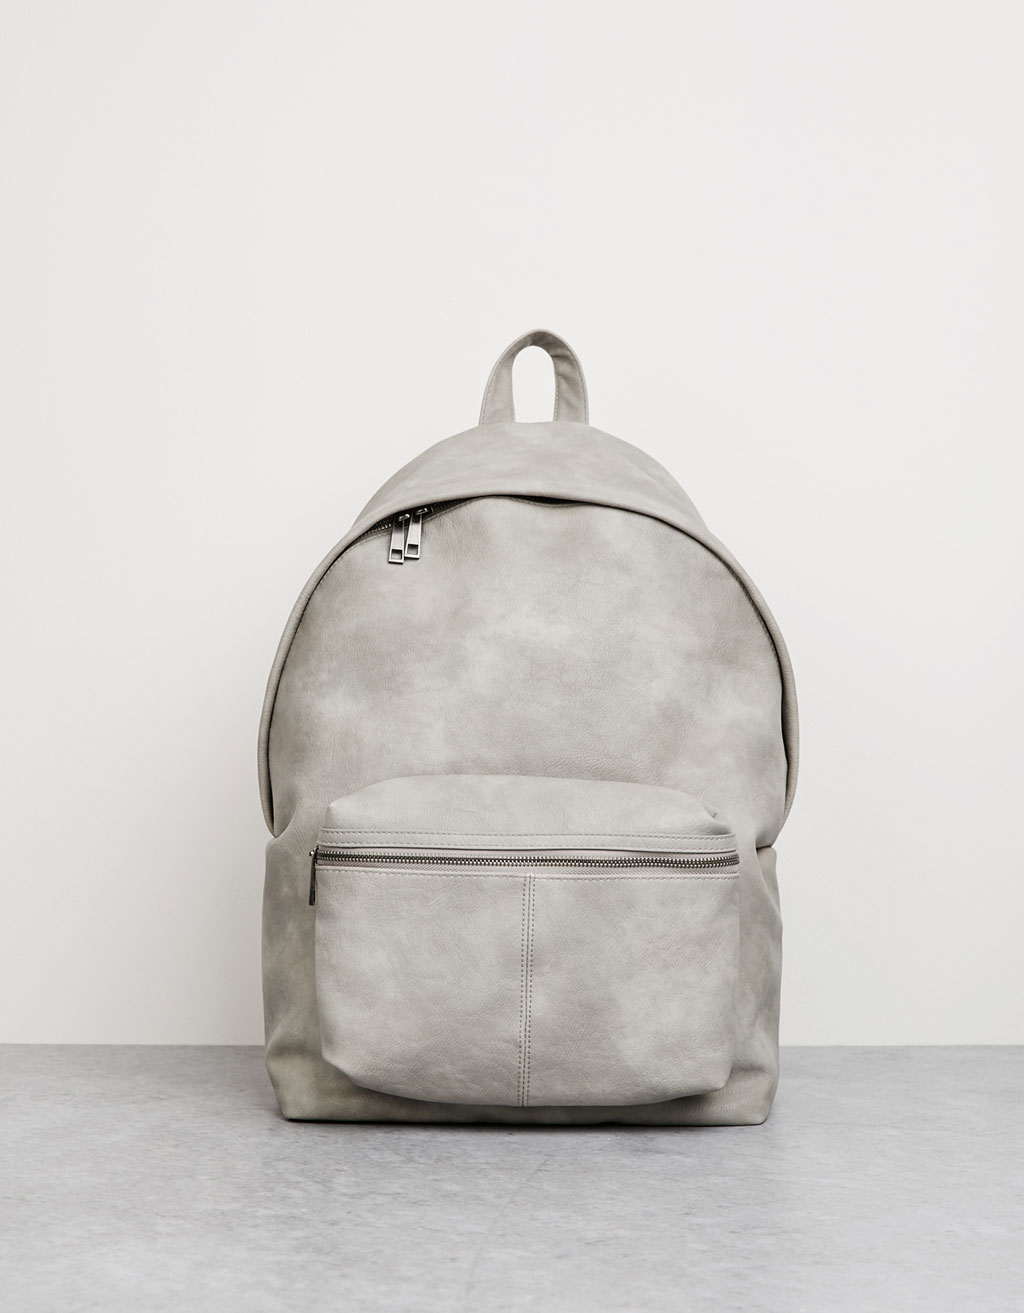 Soft backpack